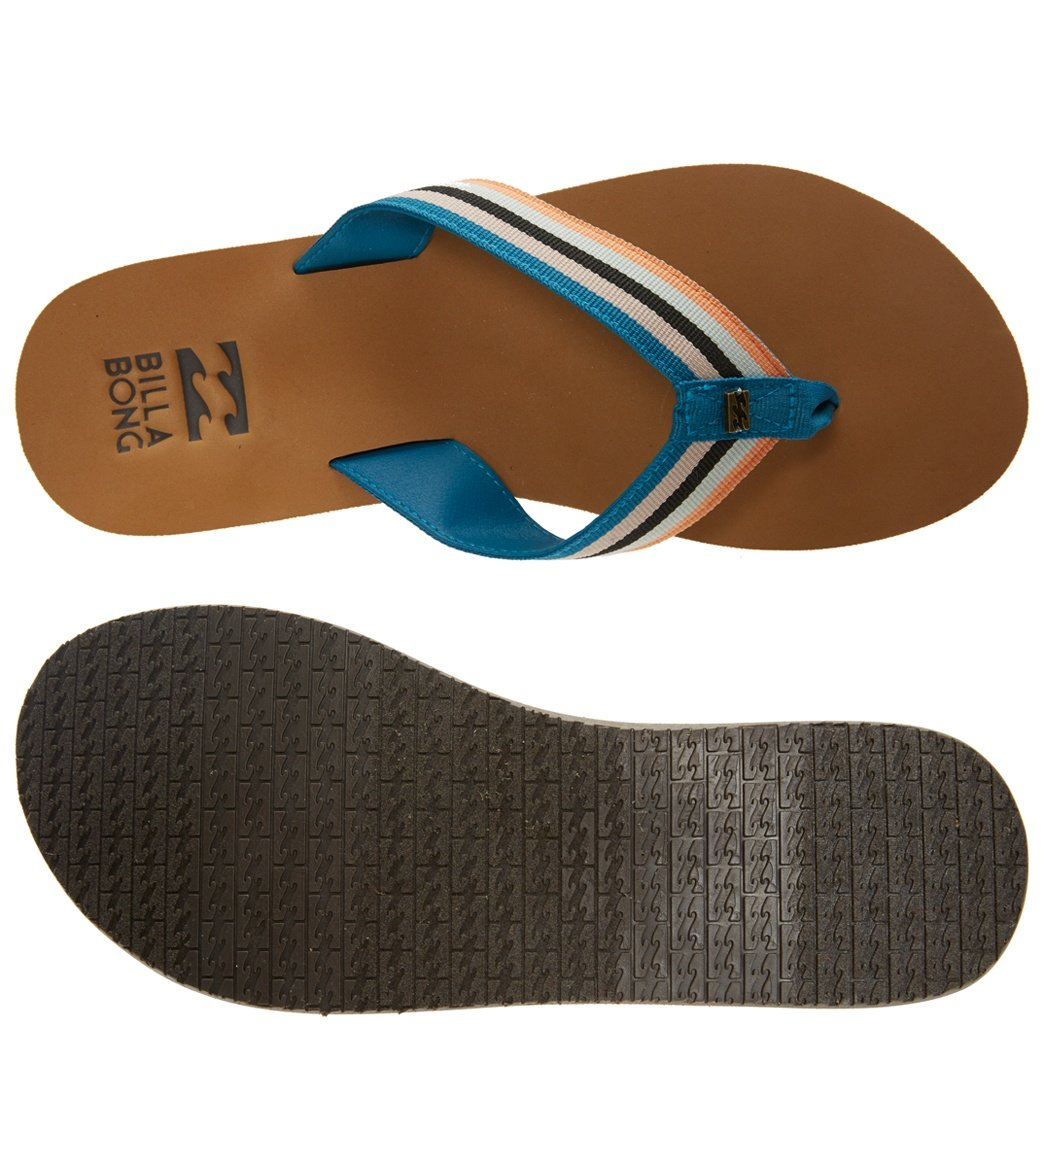 4b07b87602de Billabong Women s Baja Flip Flop at SwimOutlet.com